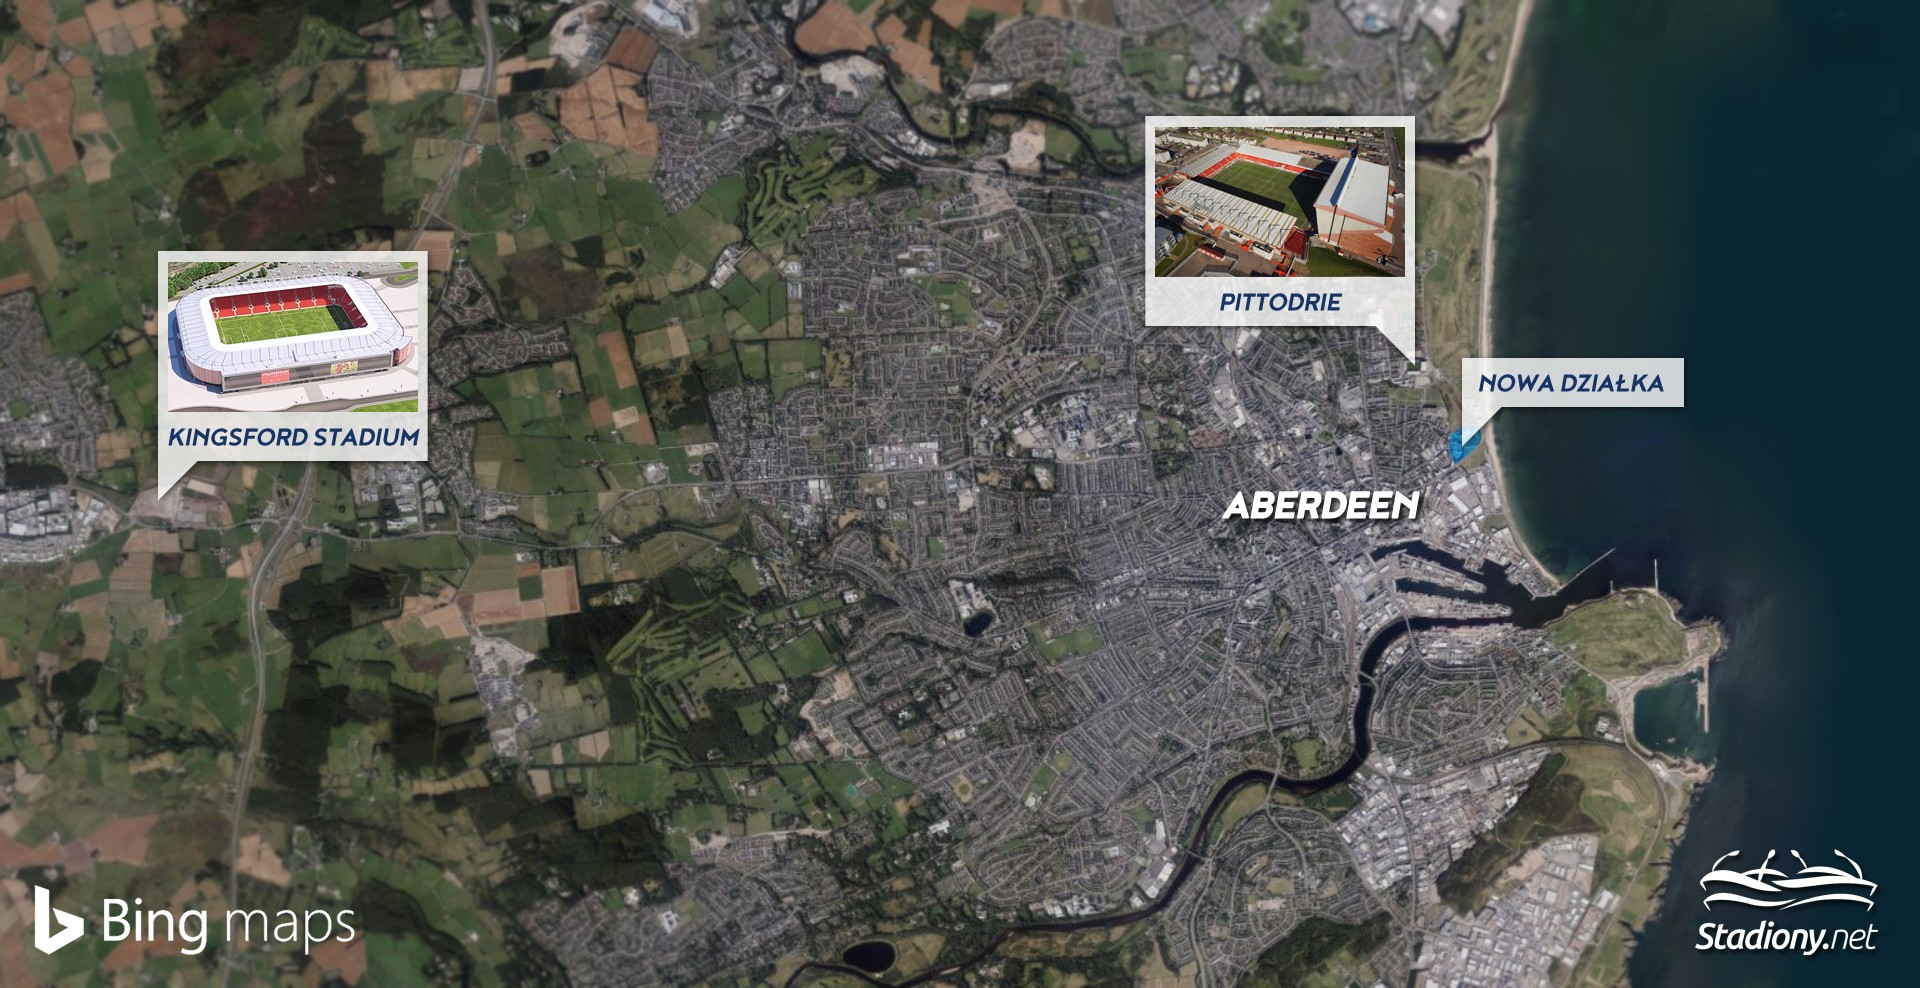 Aberdeen FC Stadium, Kingsford or new site?